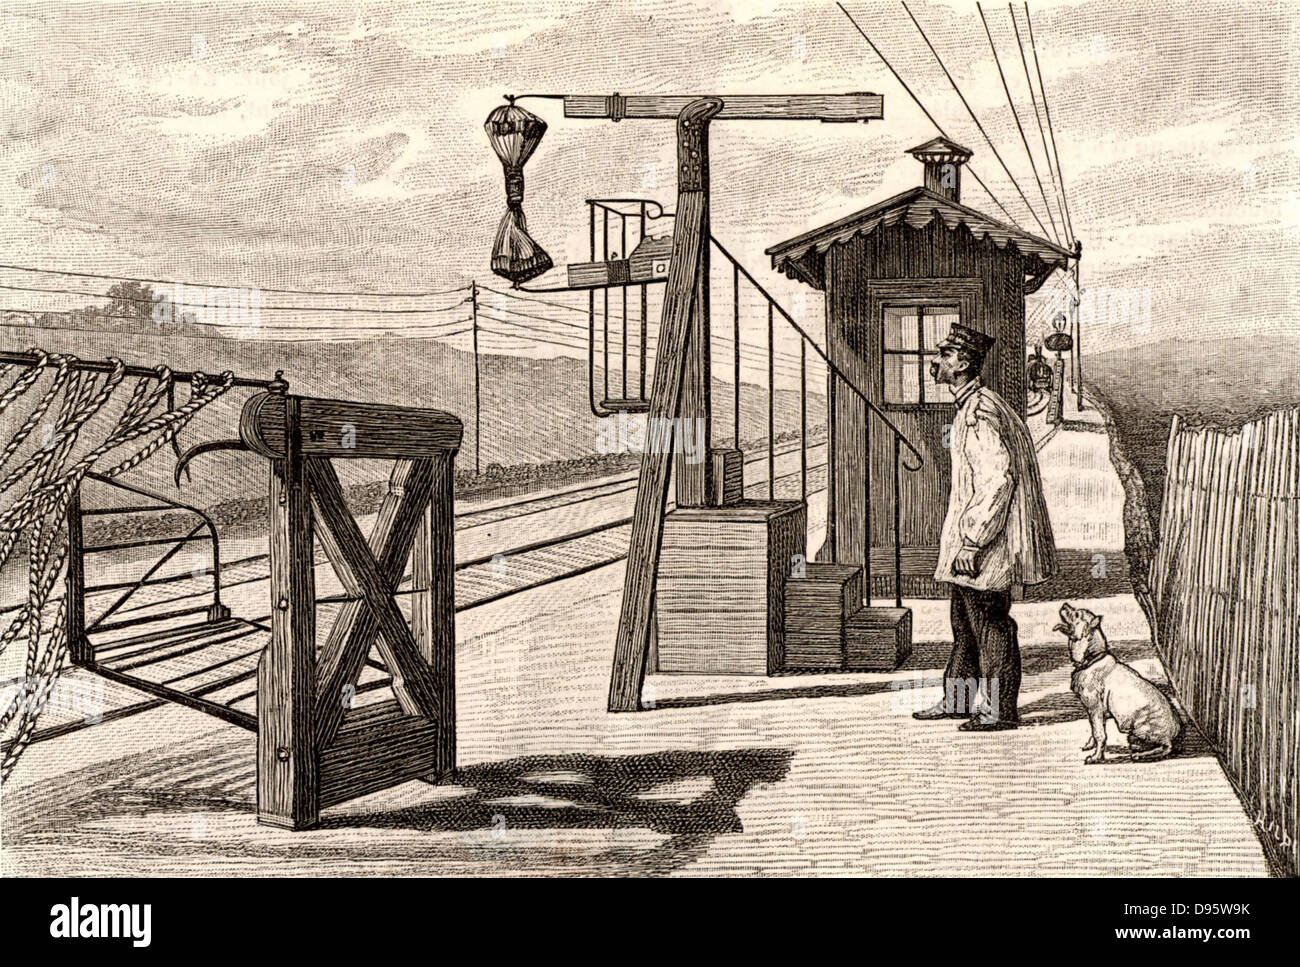 French postal service. Mail train approaching a railway station platform fitted with apparatus for catching sacks - Stock Image